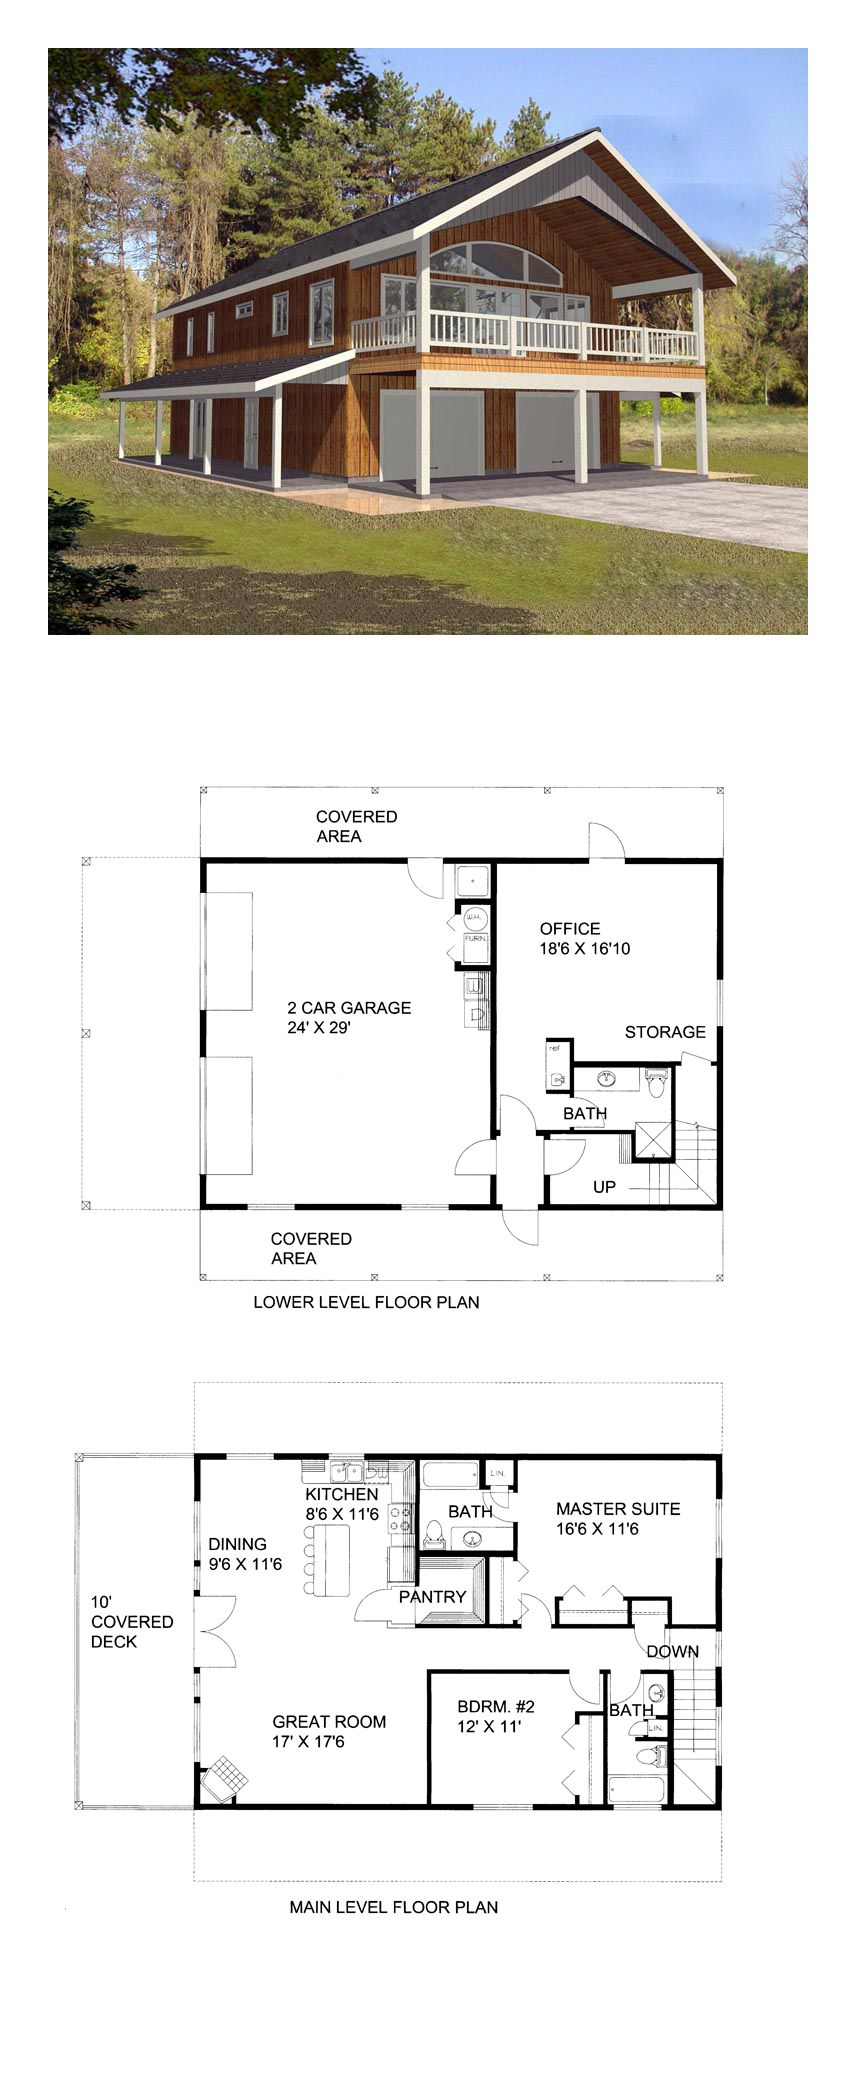 Garage apartment plan 85372 total living area 1901 sq for Live in garage plans